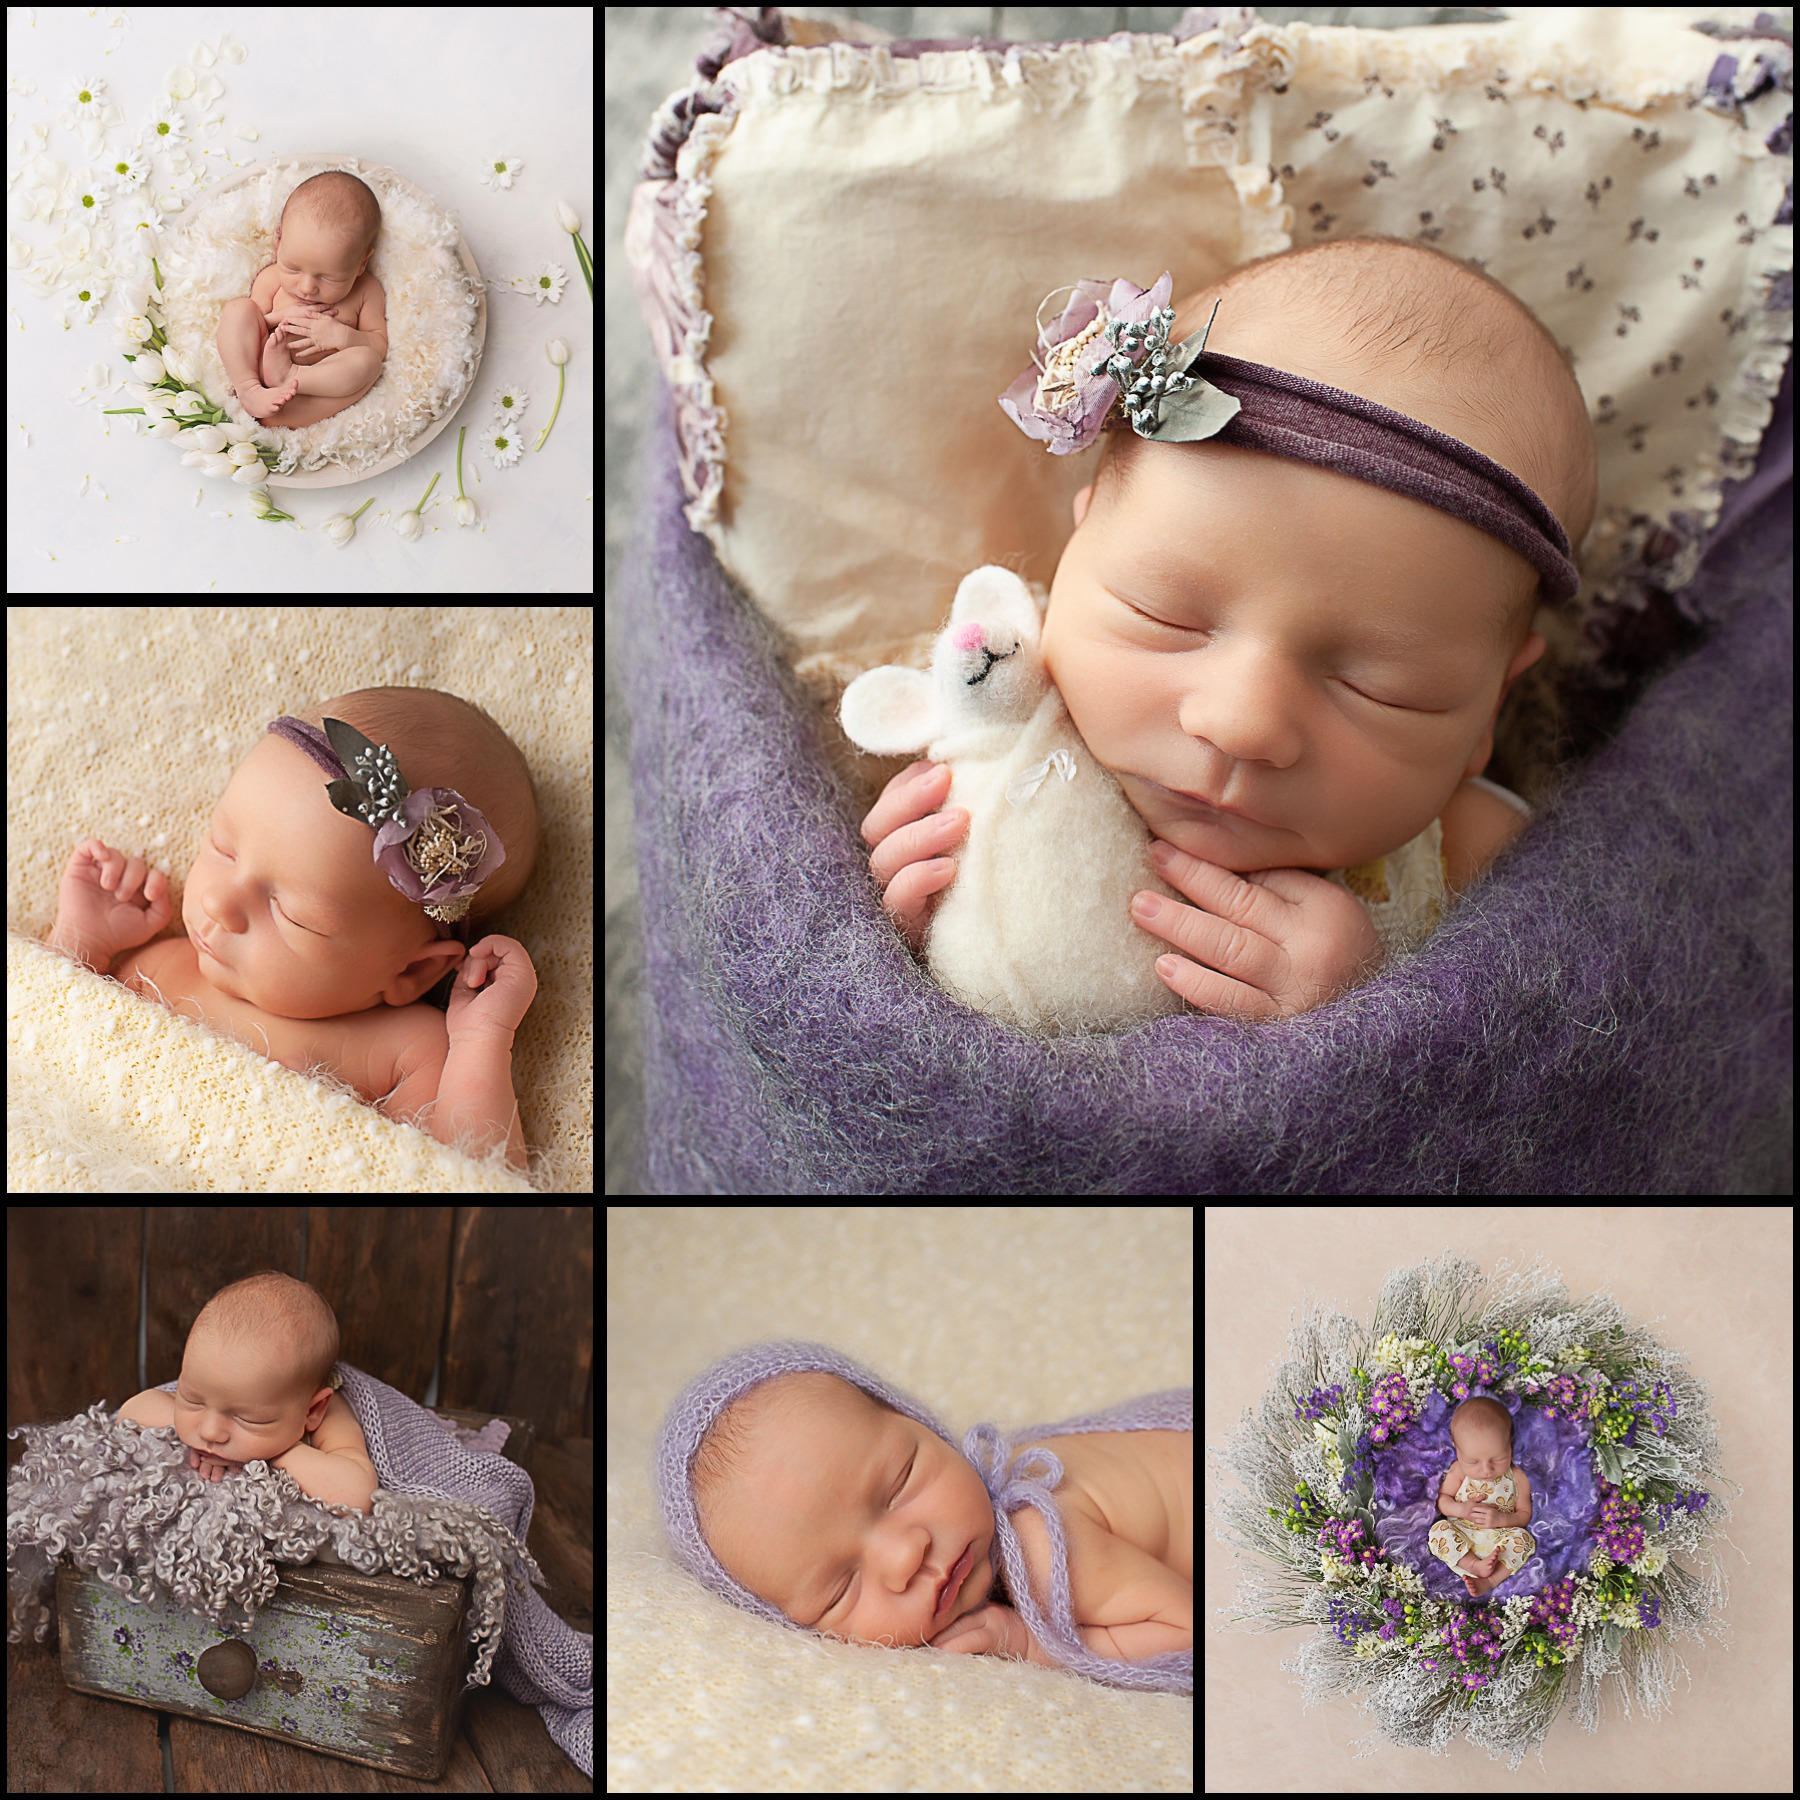 Samphire Photography Newborn Photographer Horsham experienced purple floral mouse sleeping baby girl